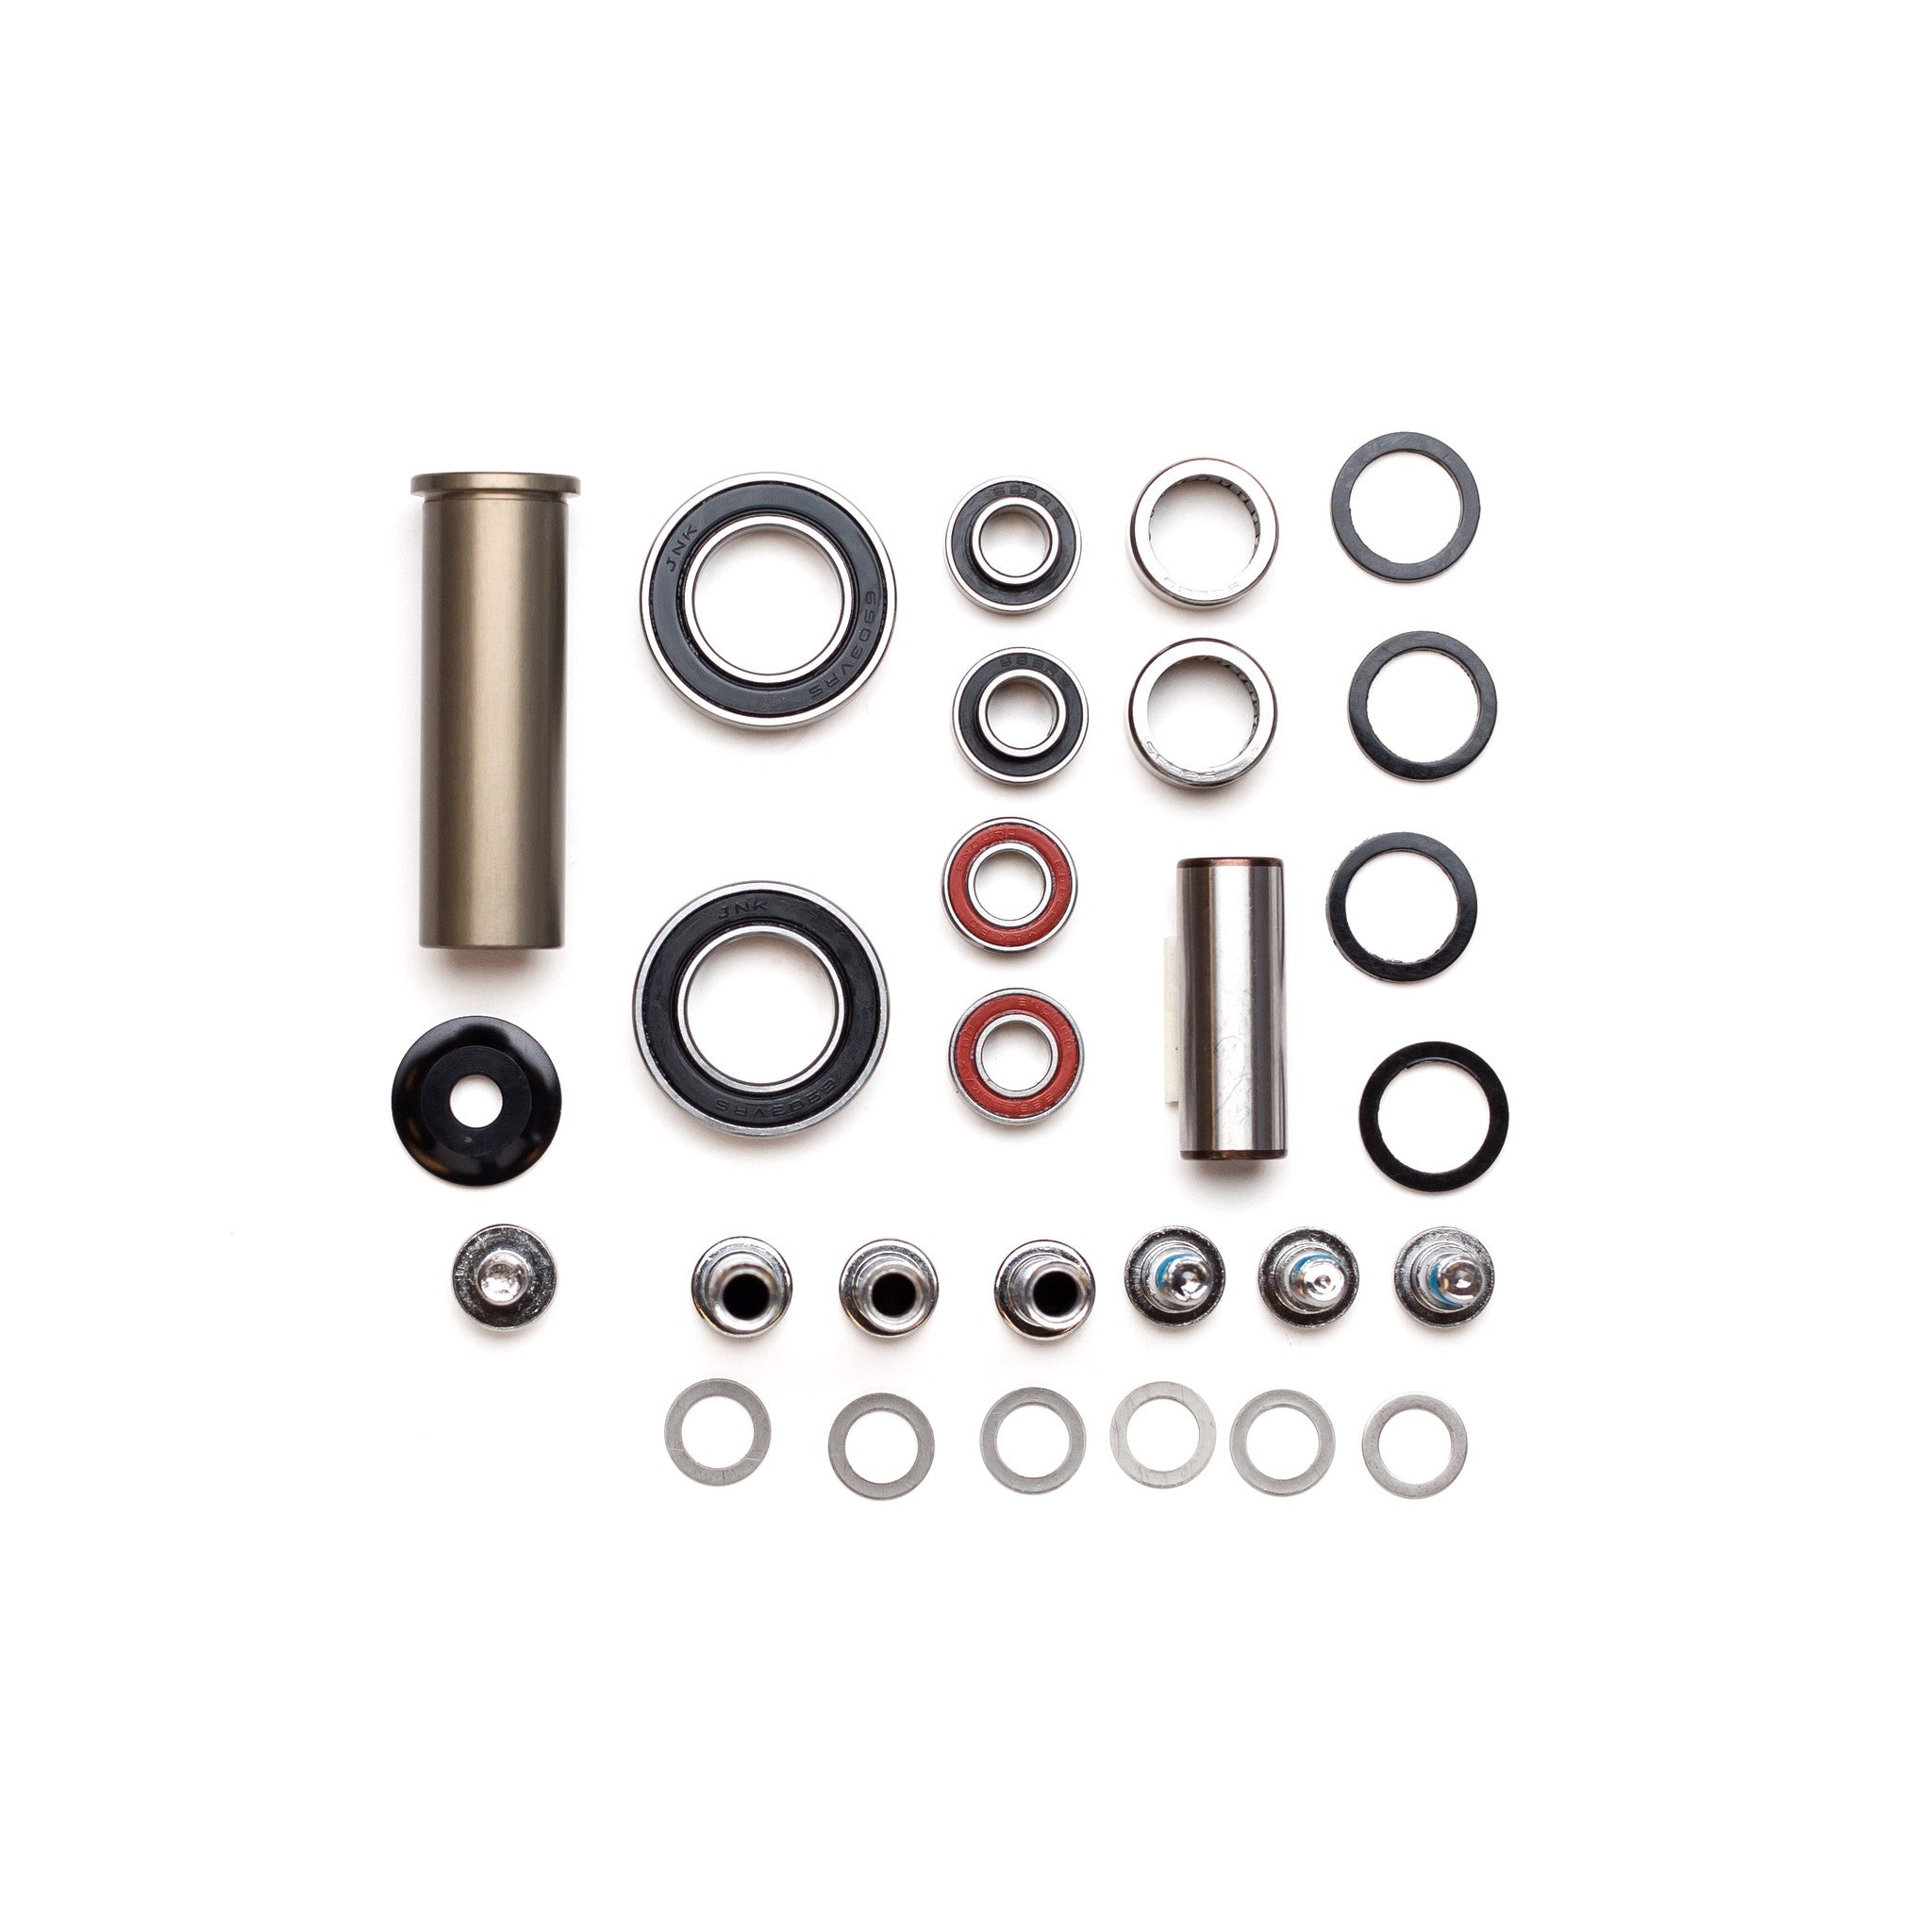 Yeti Parts - ASR 03-06 Master Rebuild Kit (Alloy Rear)